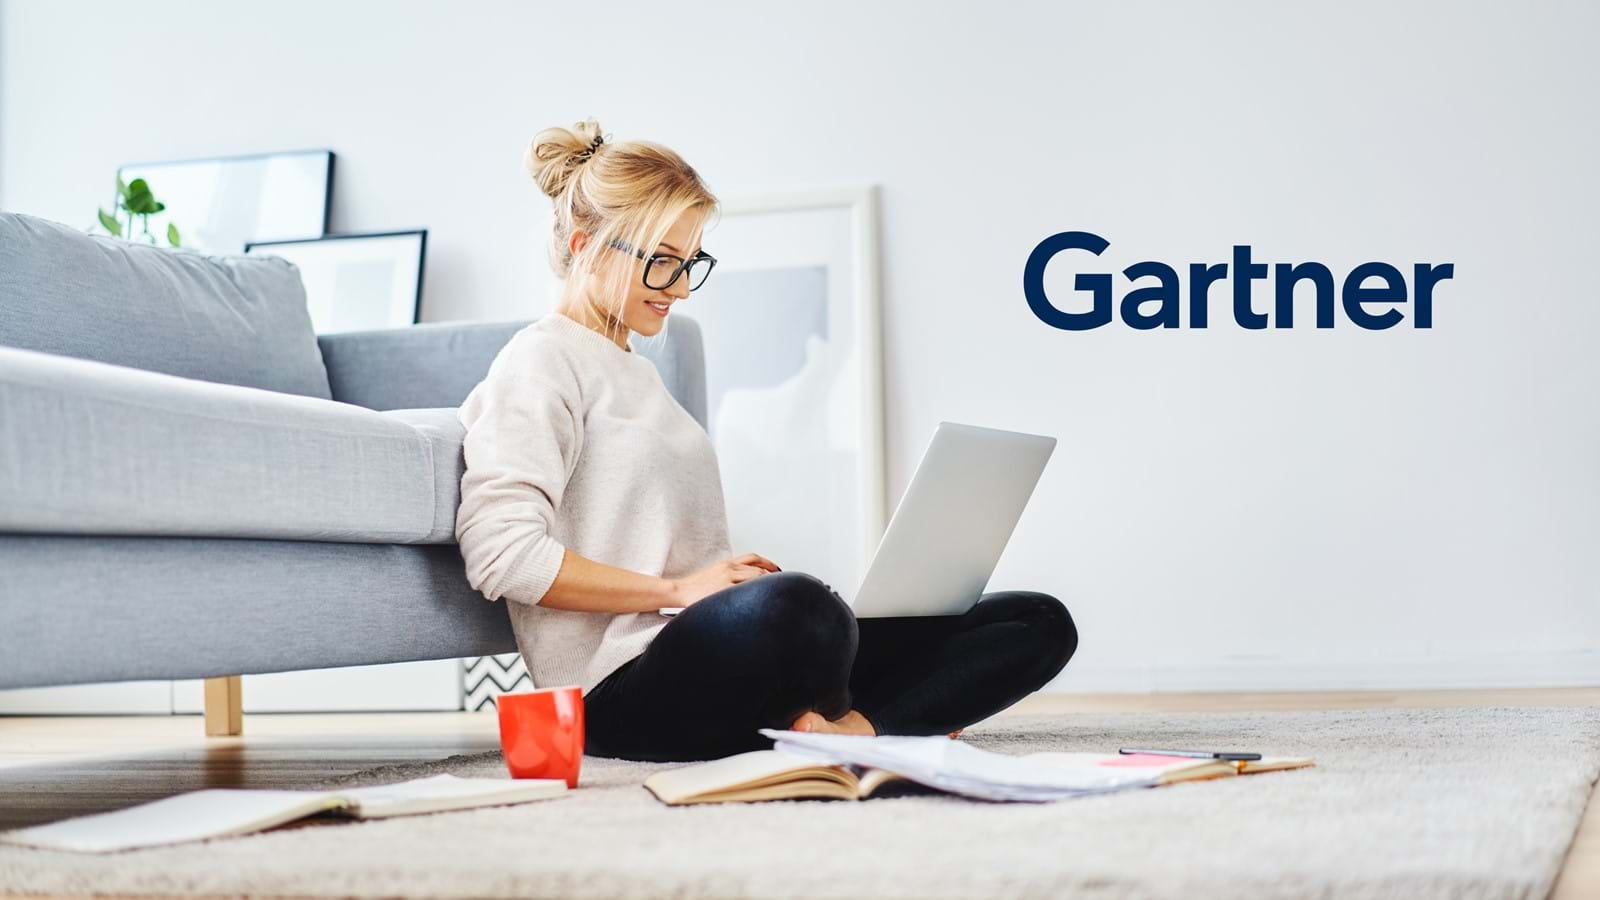 Employee reading Gartner's Market Guide on her laptop